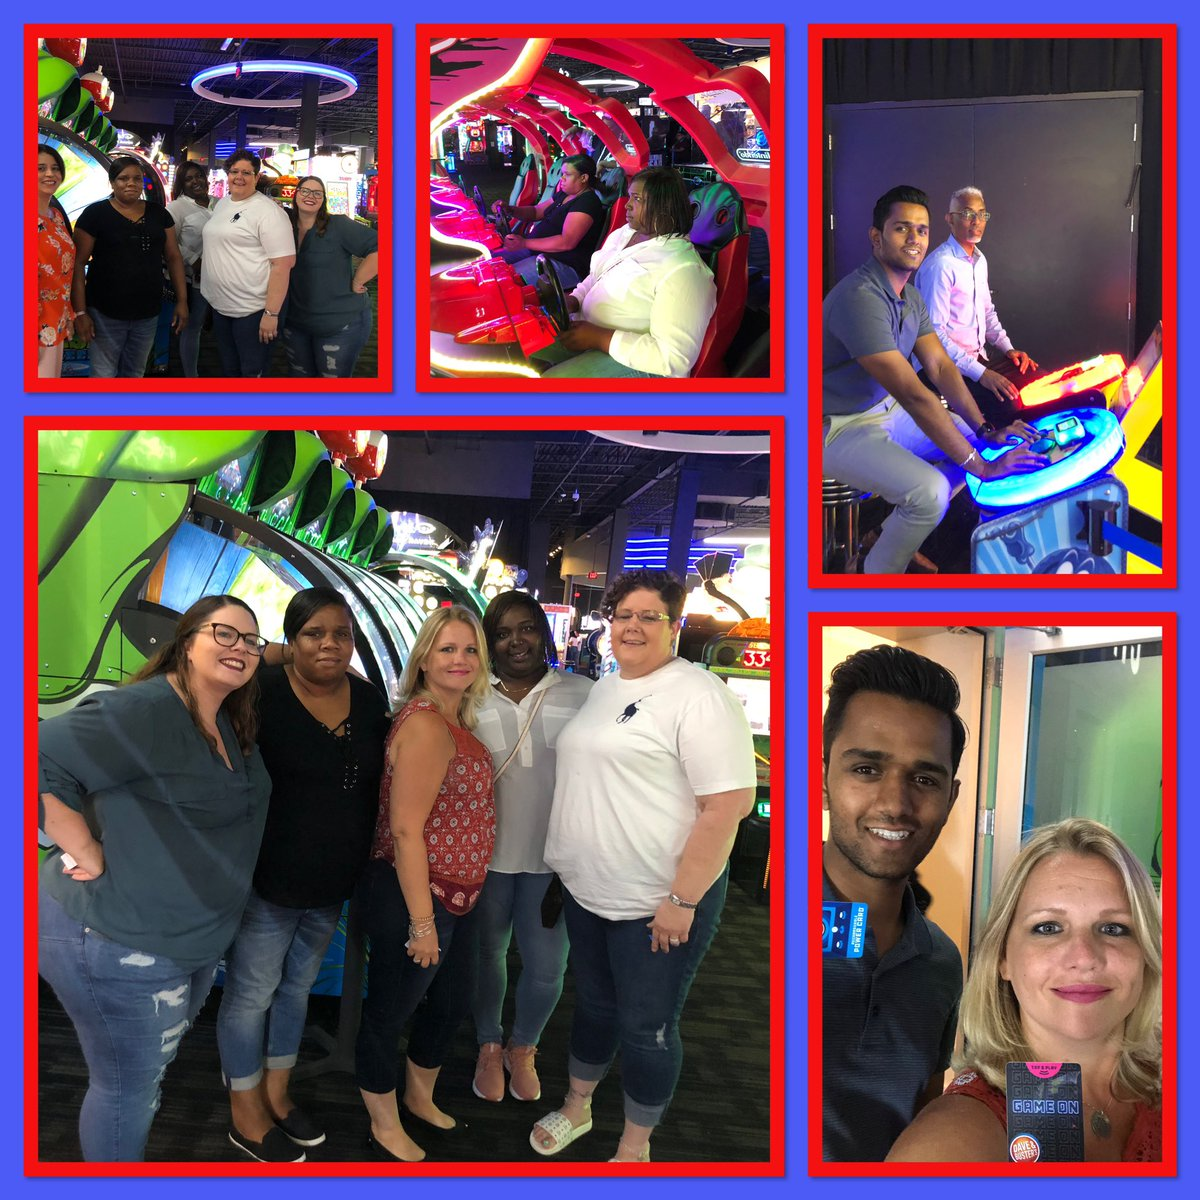 Team building Tuesday! #D5winning #ShowThemYouCARE #InvestingInTheFuture<br>http://pic.twitter.com/Z5K6BjO8gH